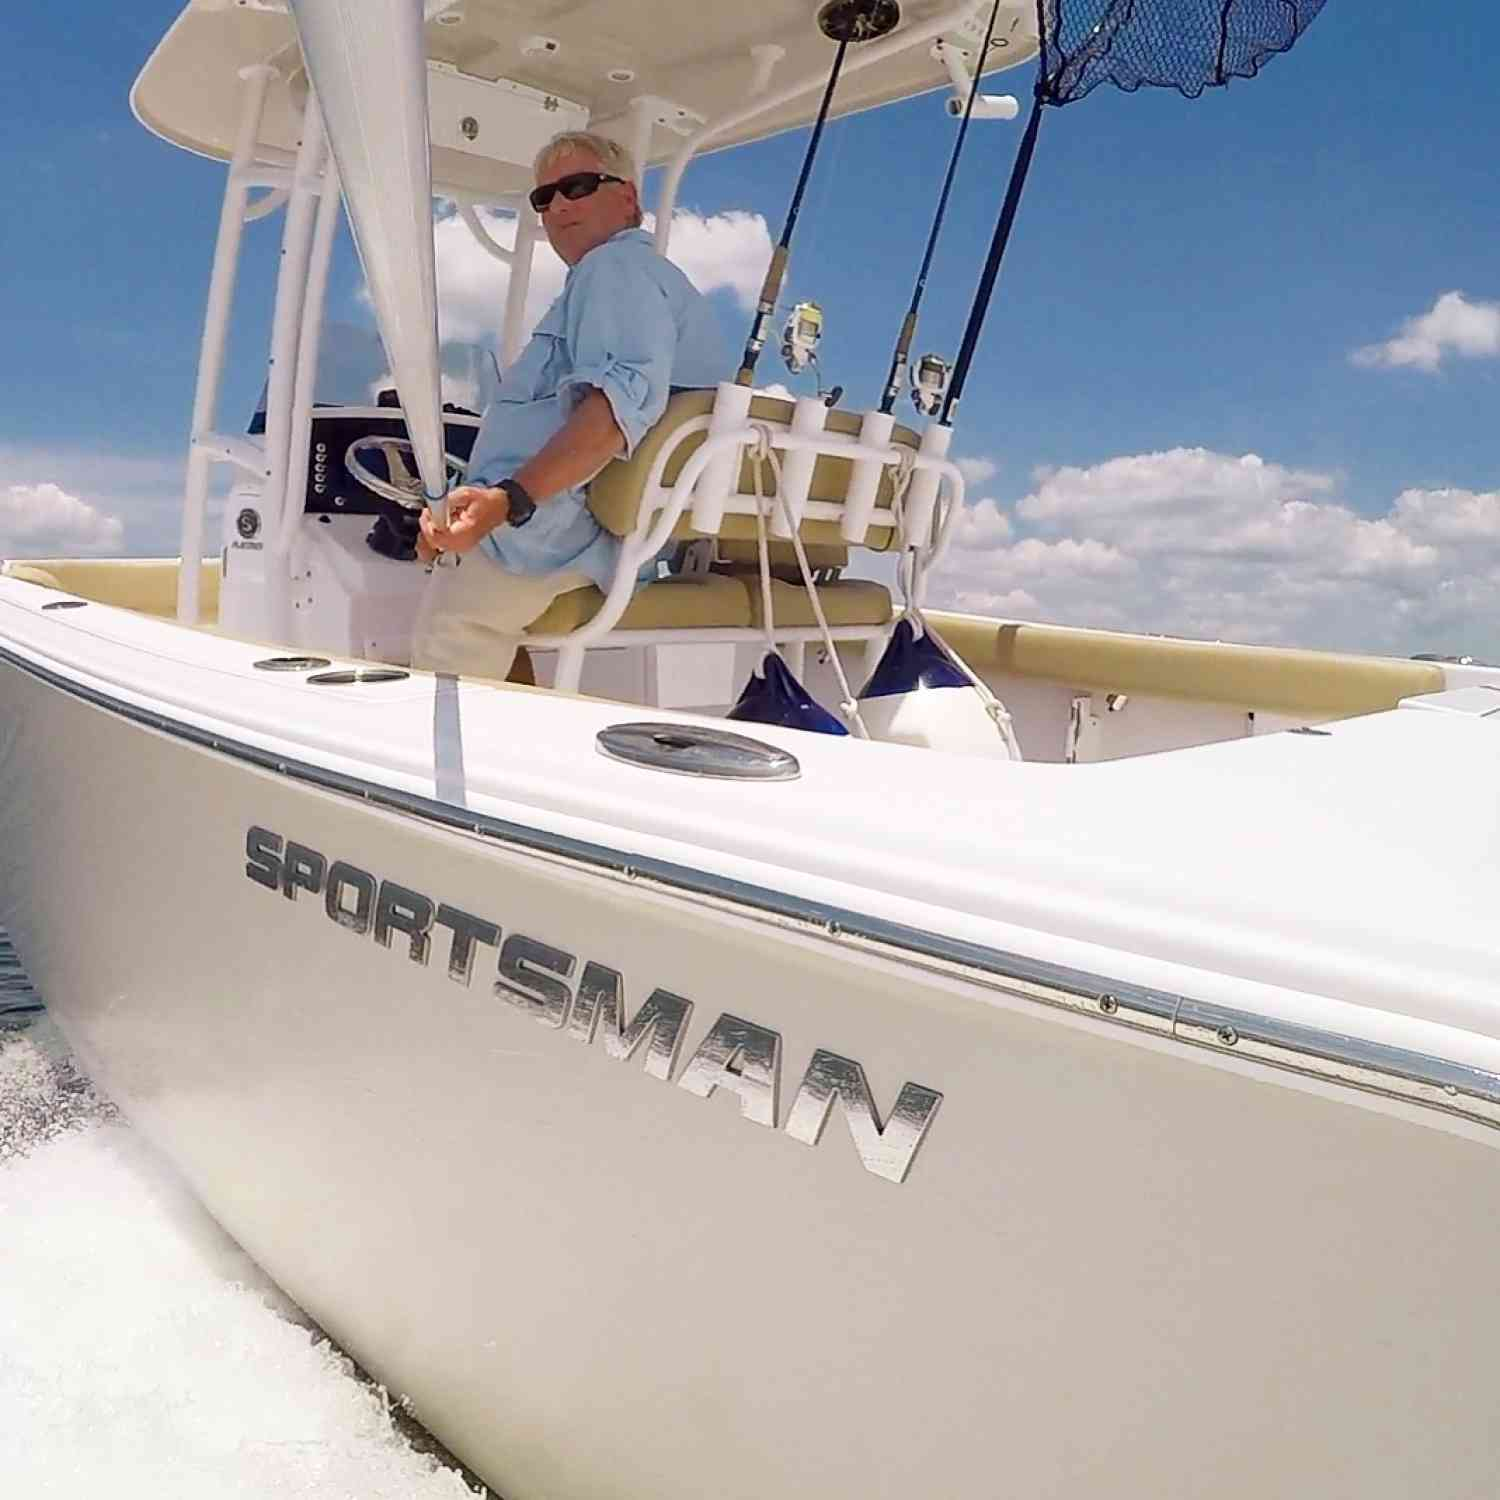 Title: Gone Fishing. - On board their Sportsman Heritage 231 Center Console - Location: Charleston Jetties. Participating in the Photo Contest #SportsmanJuly2018